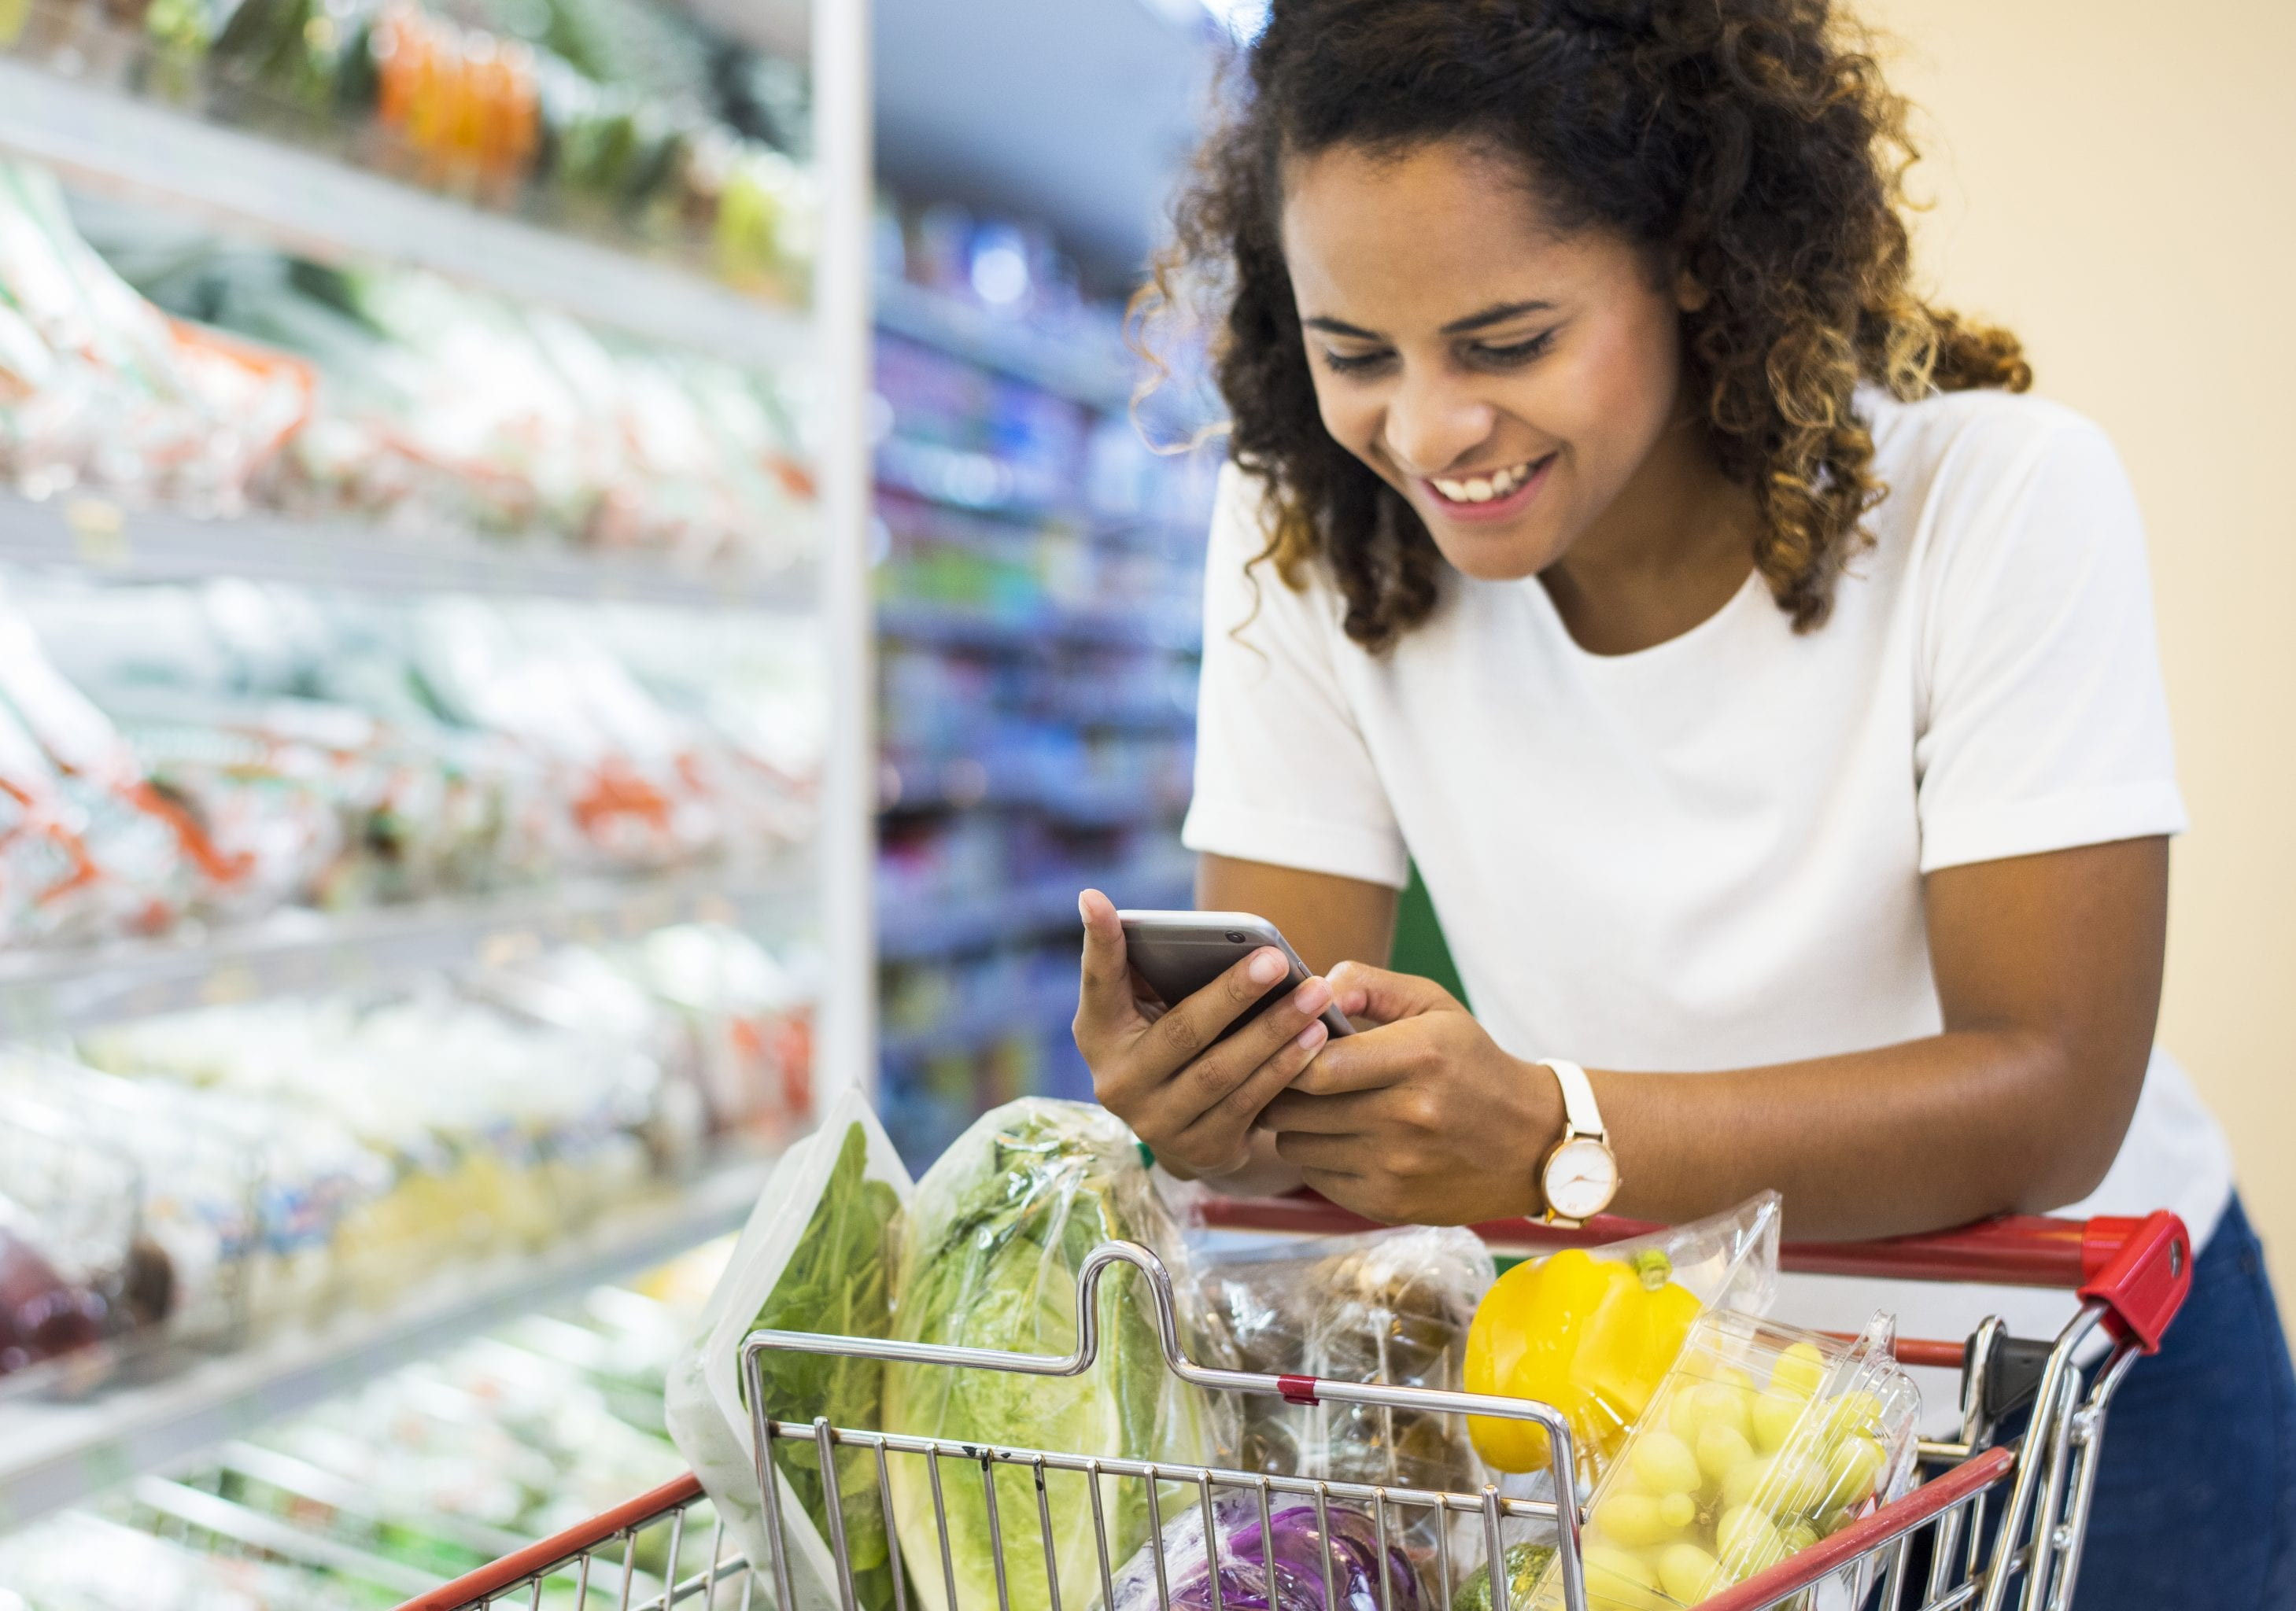 Healthy Woman Grocery Shopping - Following a Diet & Fitness Program